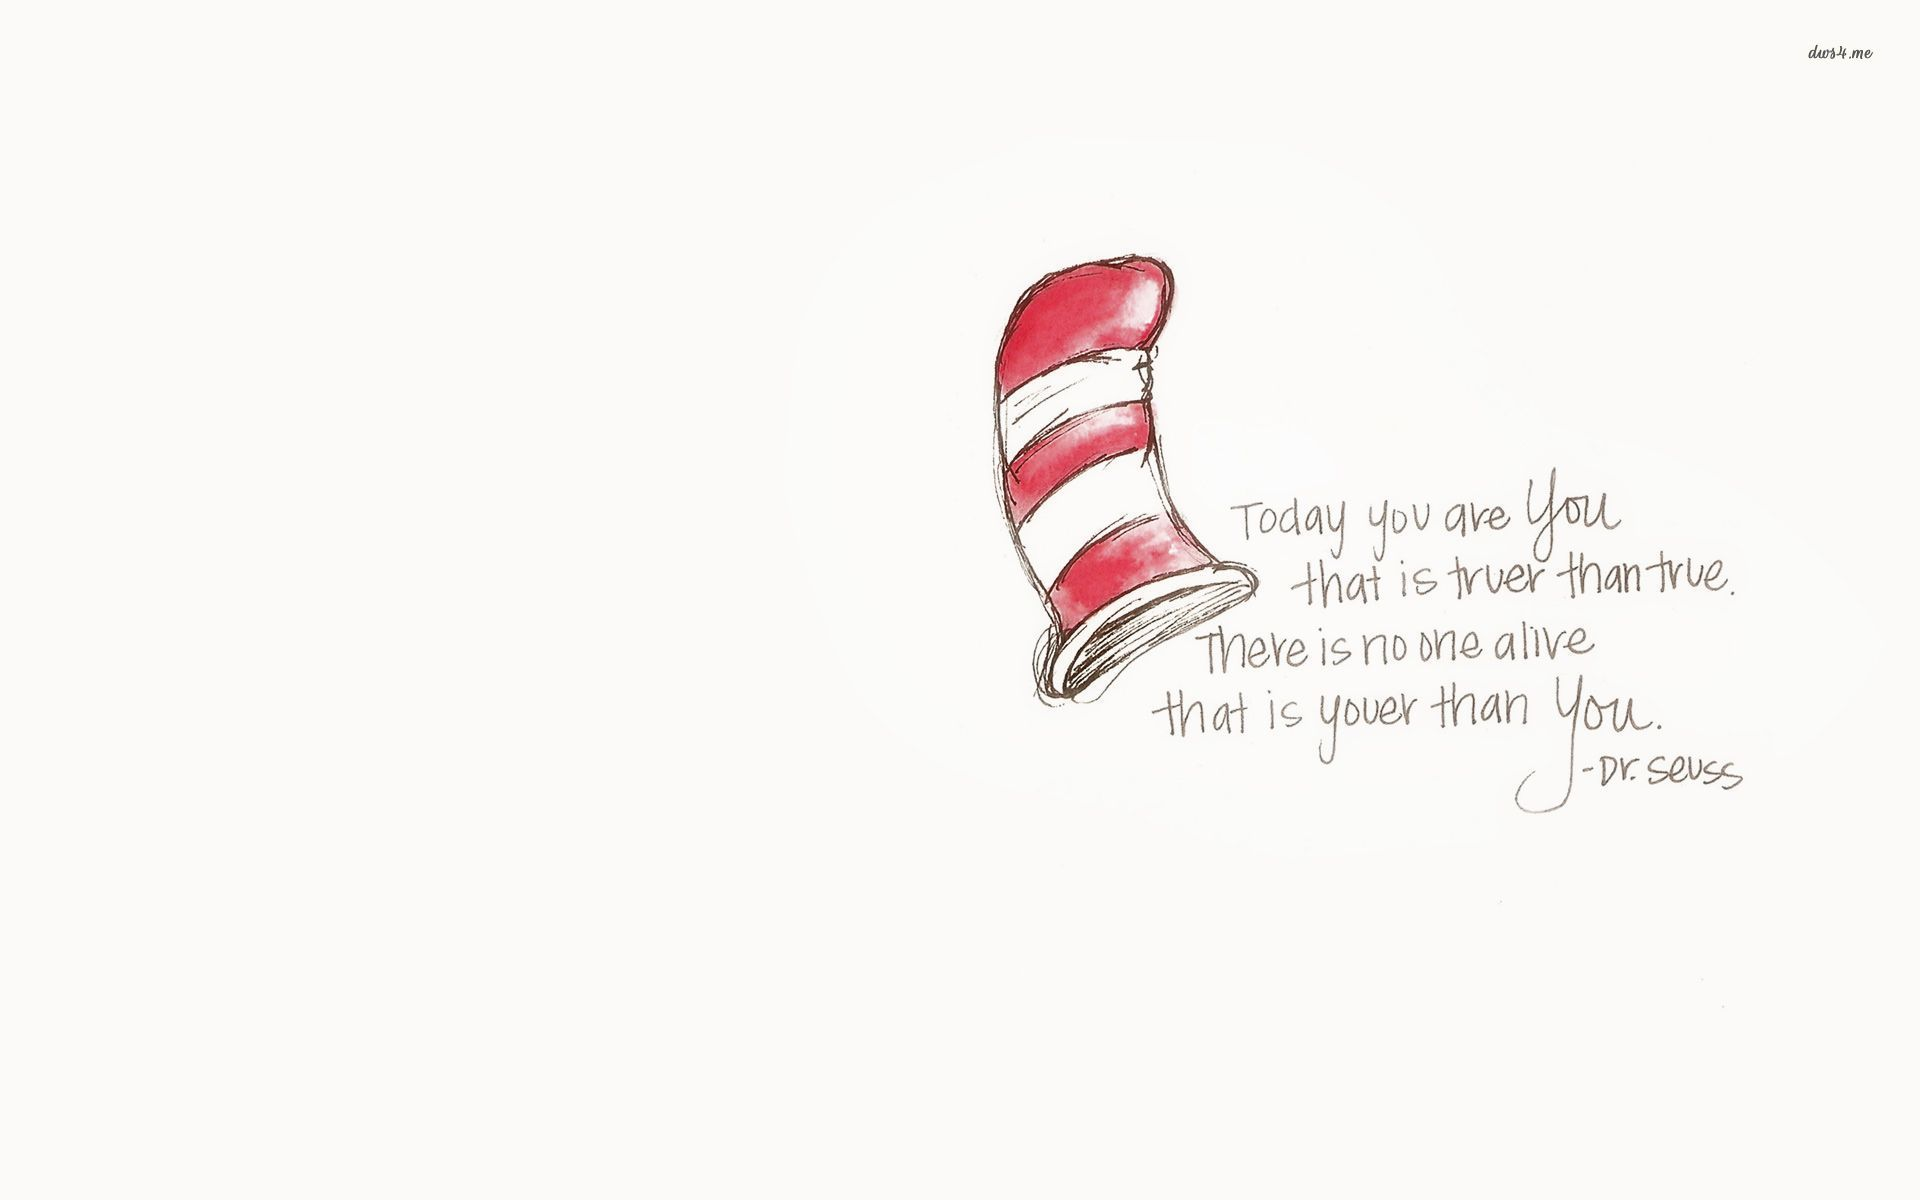 dr seuss quote wallpaper quote wallpapers 22741